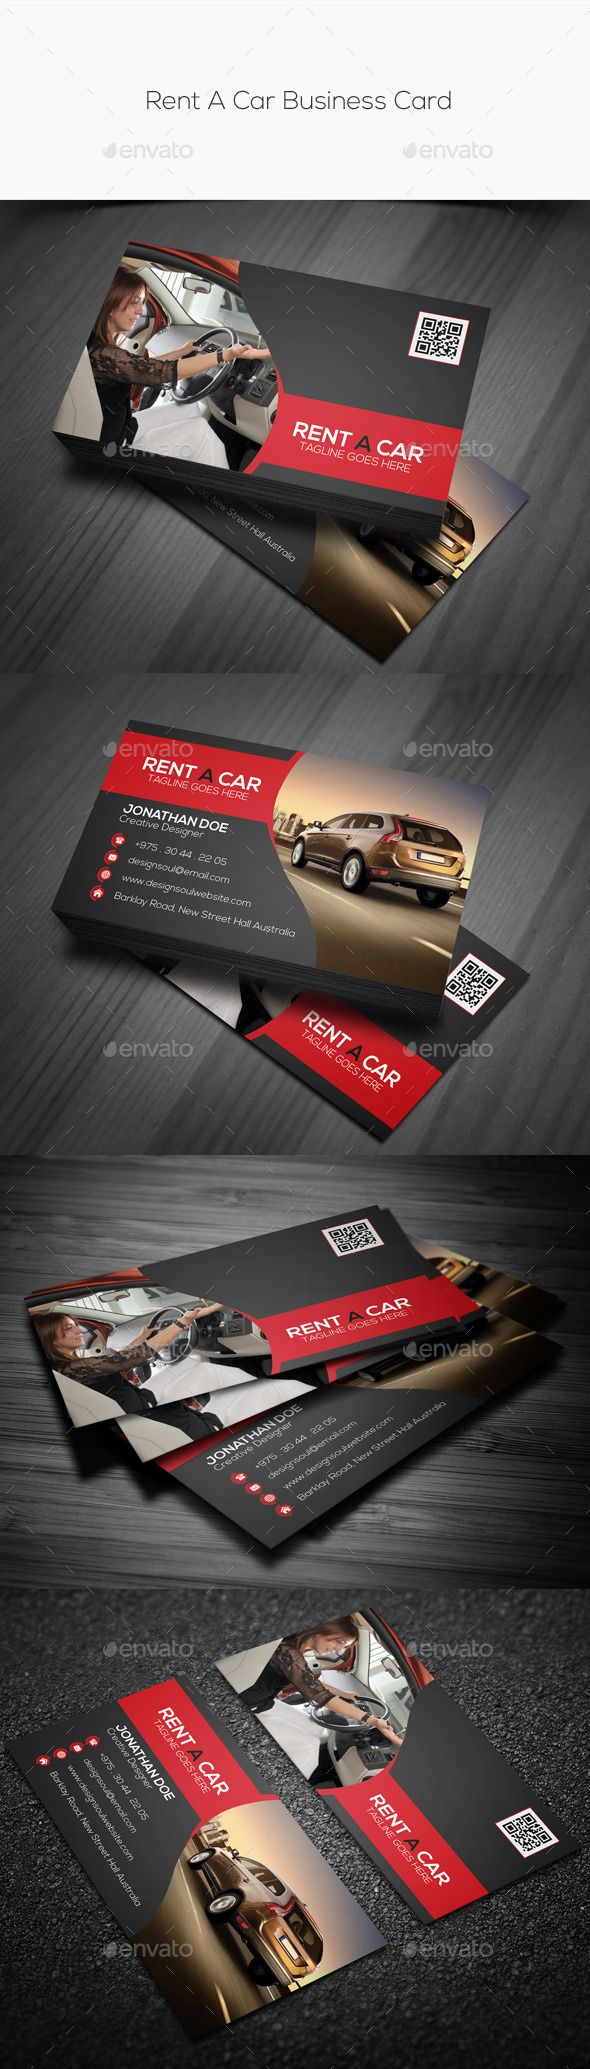 9 best vizitka images on pinterest business card design rent a car business card by adobe photoshop fully layered psd files easy customizable and editable easy to use your own photossmart object option reheart Image collections